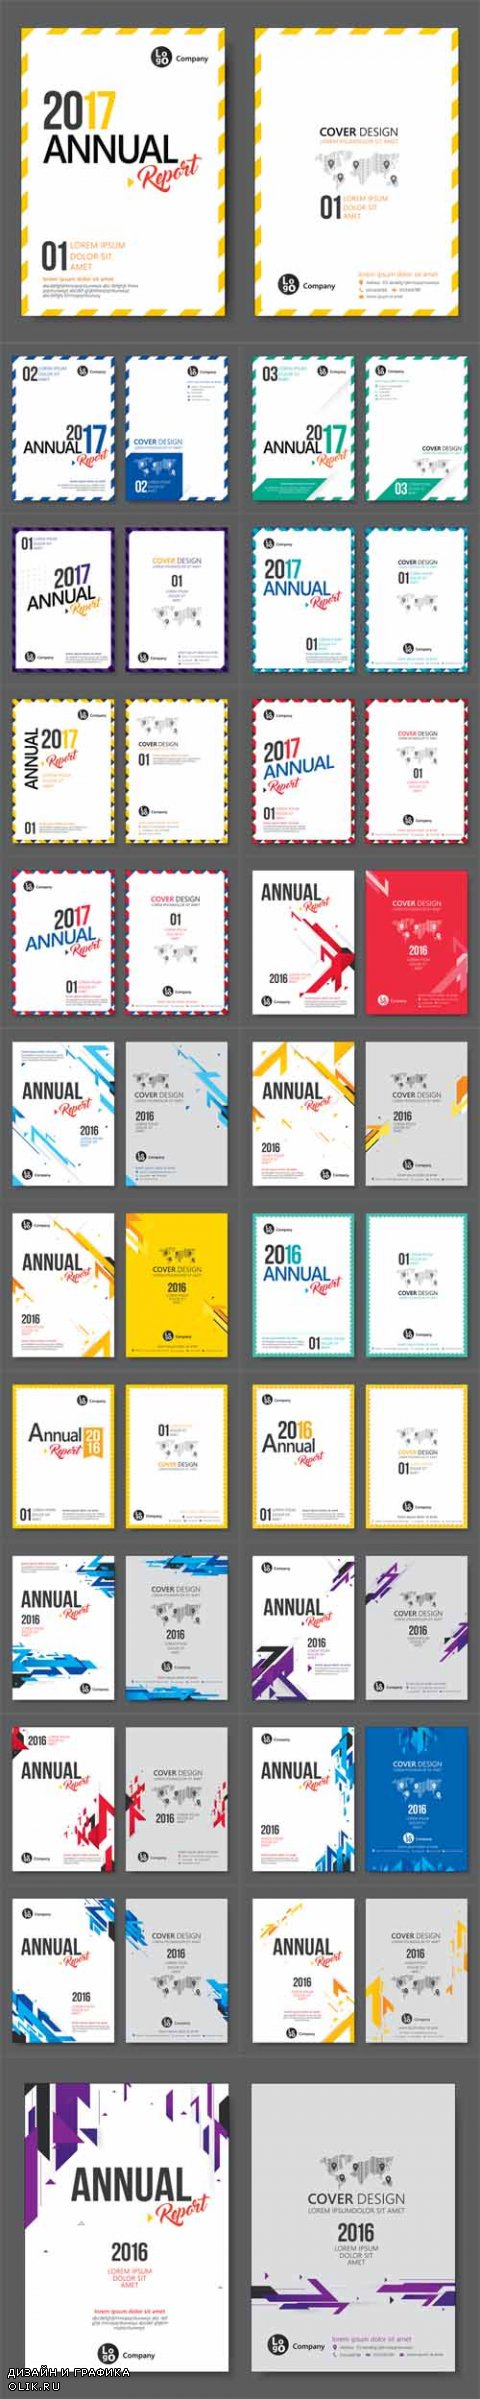 Vector Flyer, Leafle, Annual Report Templates Flat Design in A4 Size